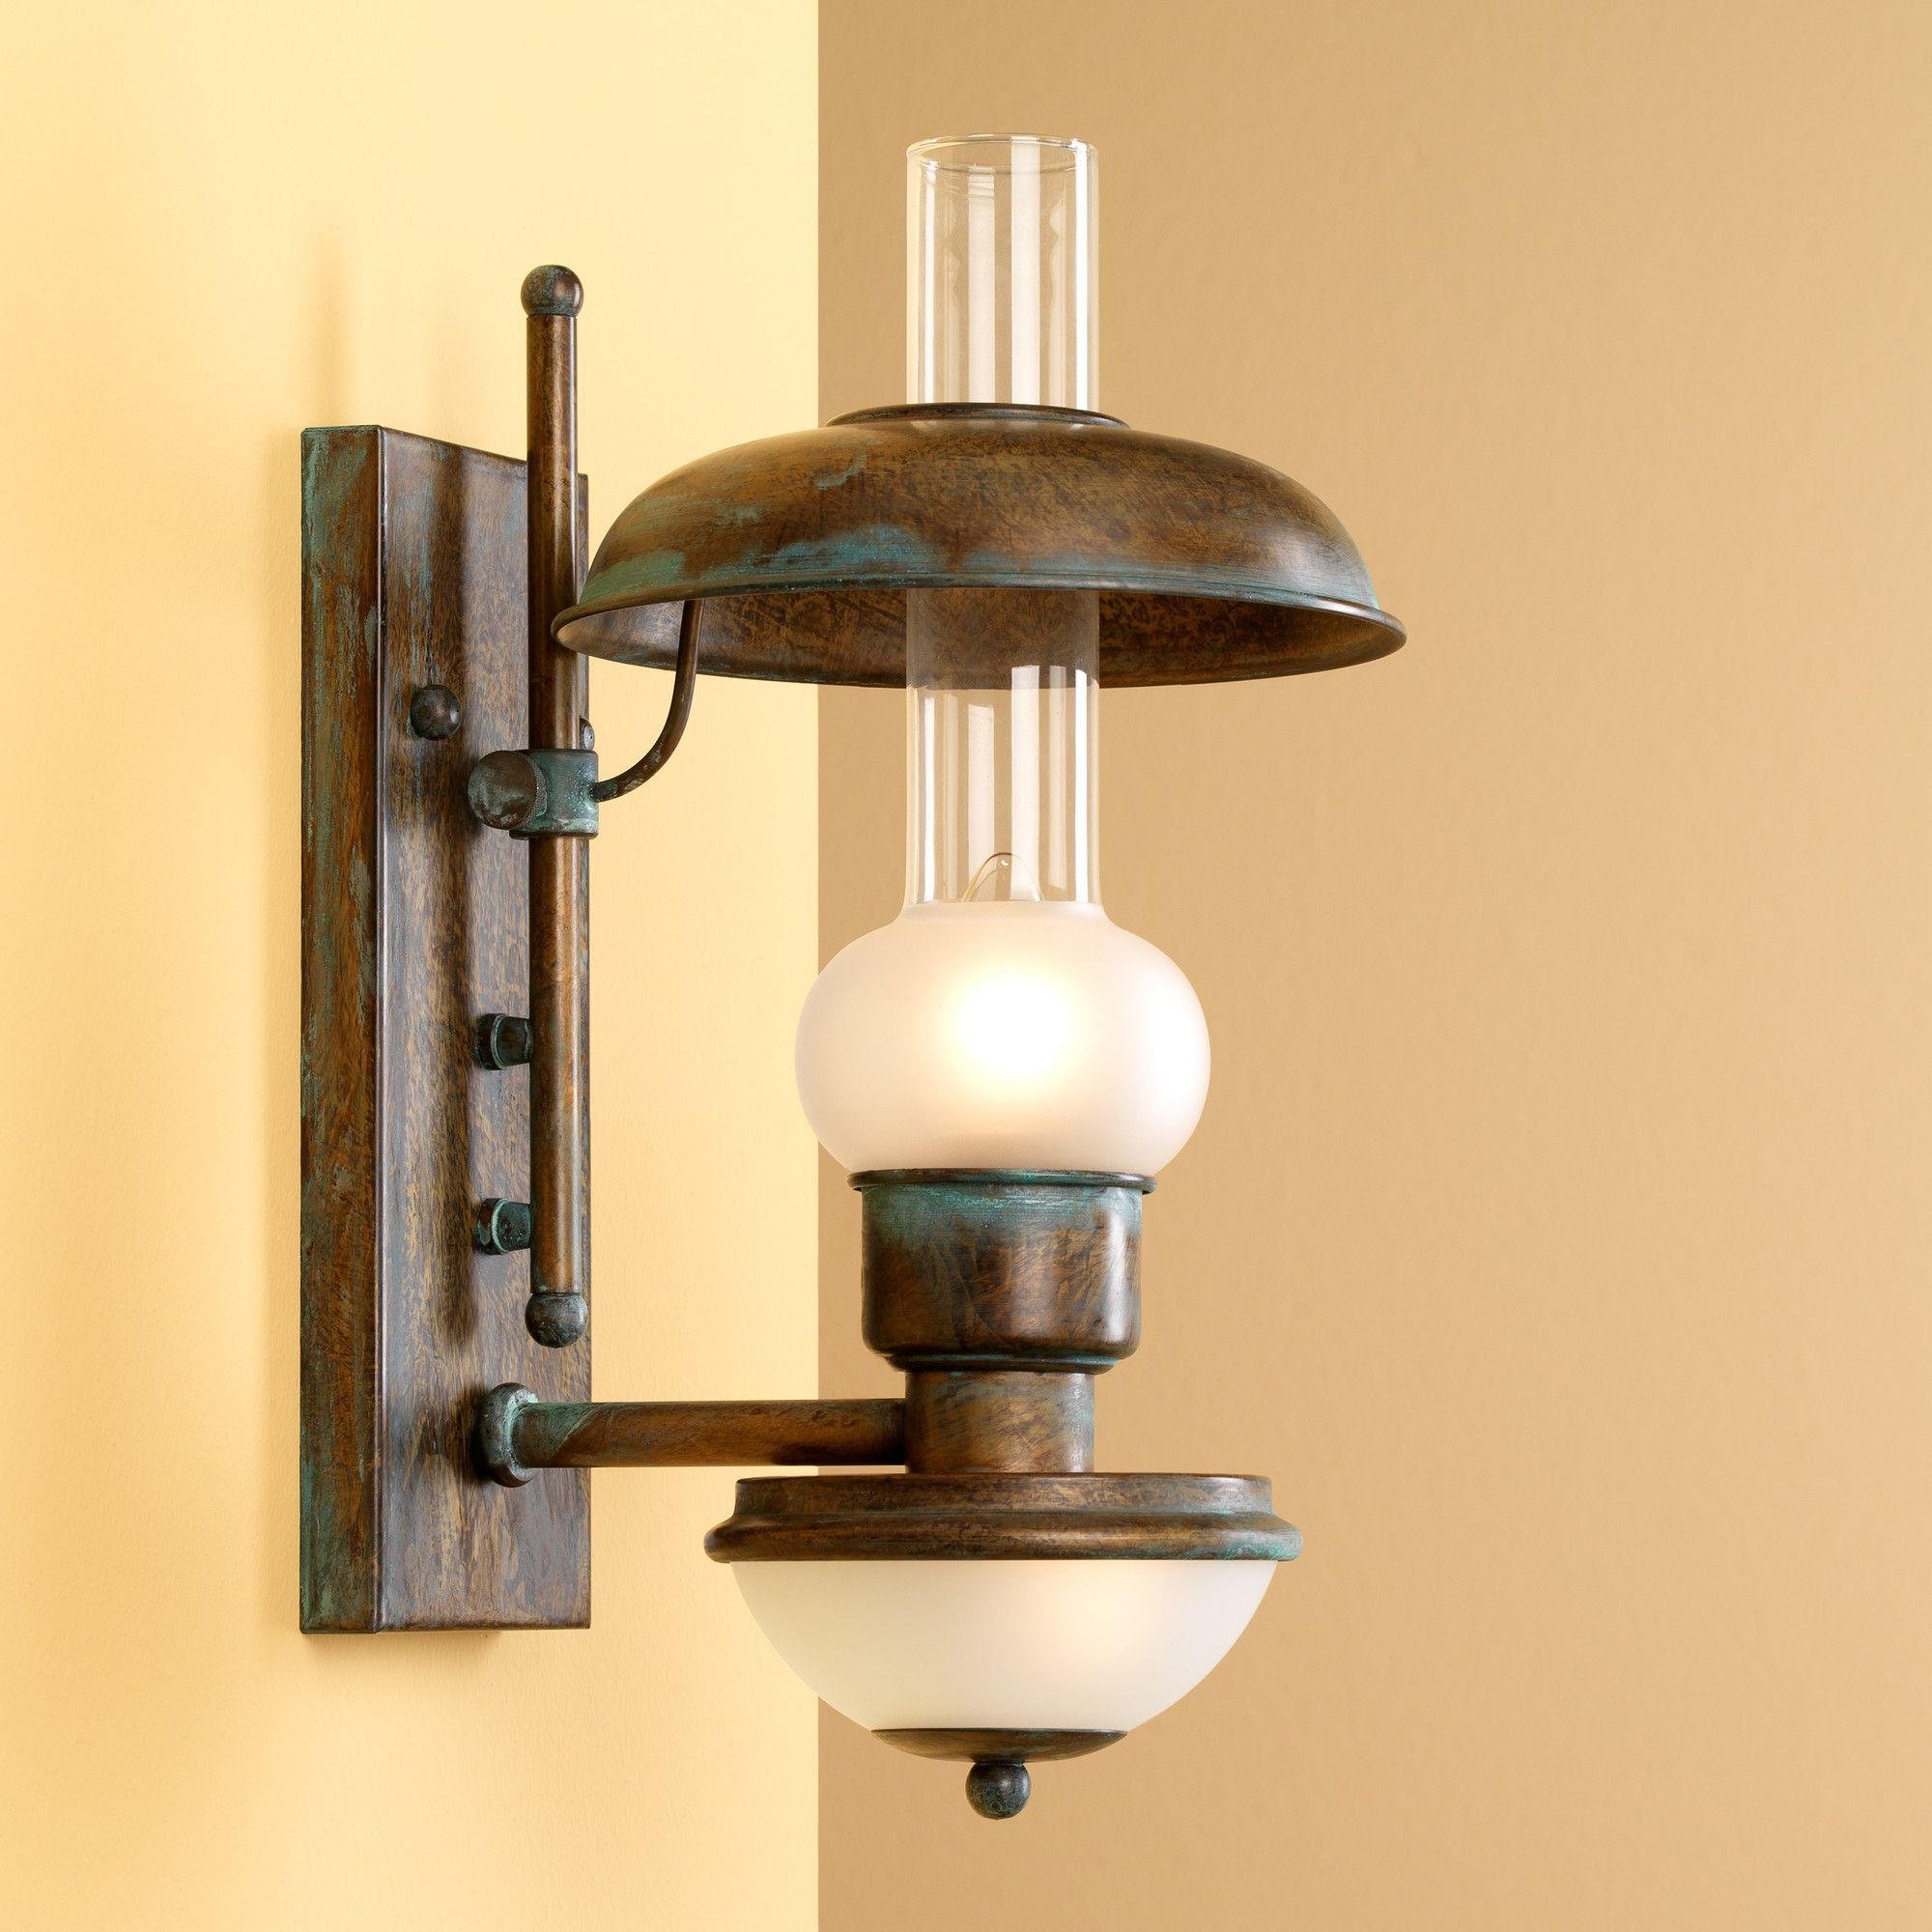 wood wooden with c sconce candle sconces modern r product lighting for wall onoff switch cabin candles charming rustic